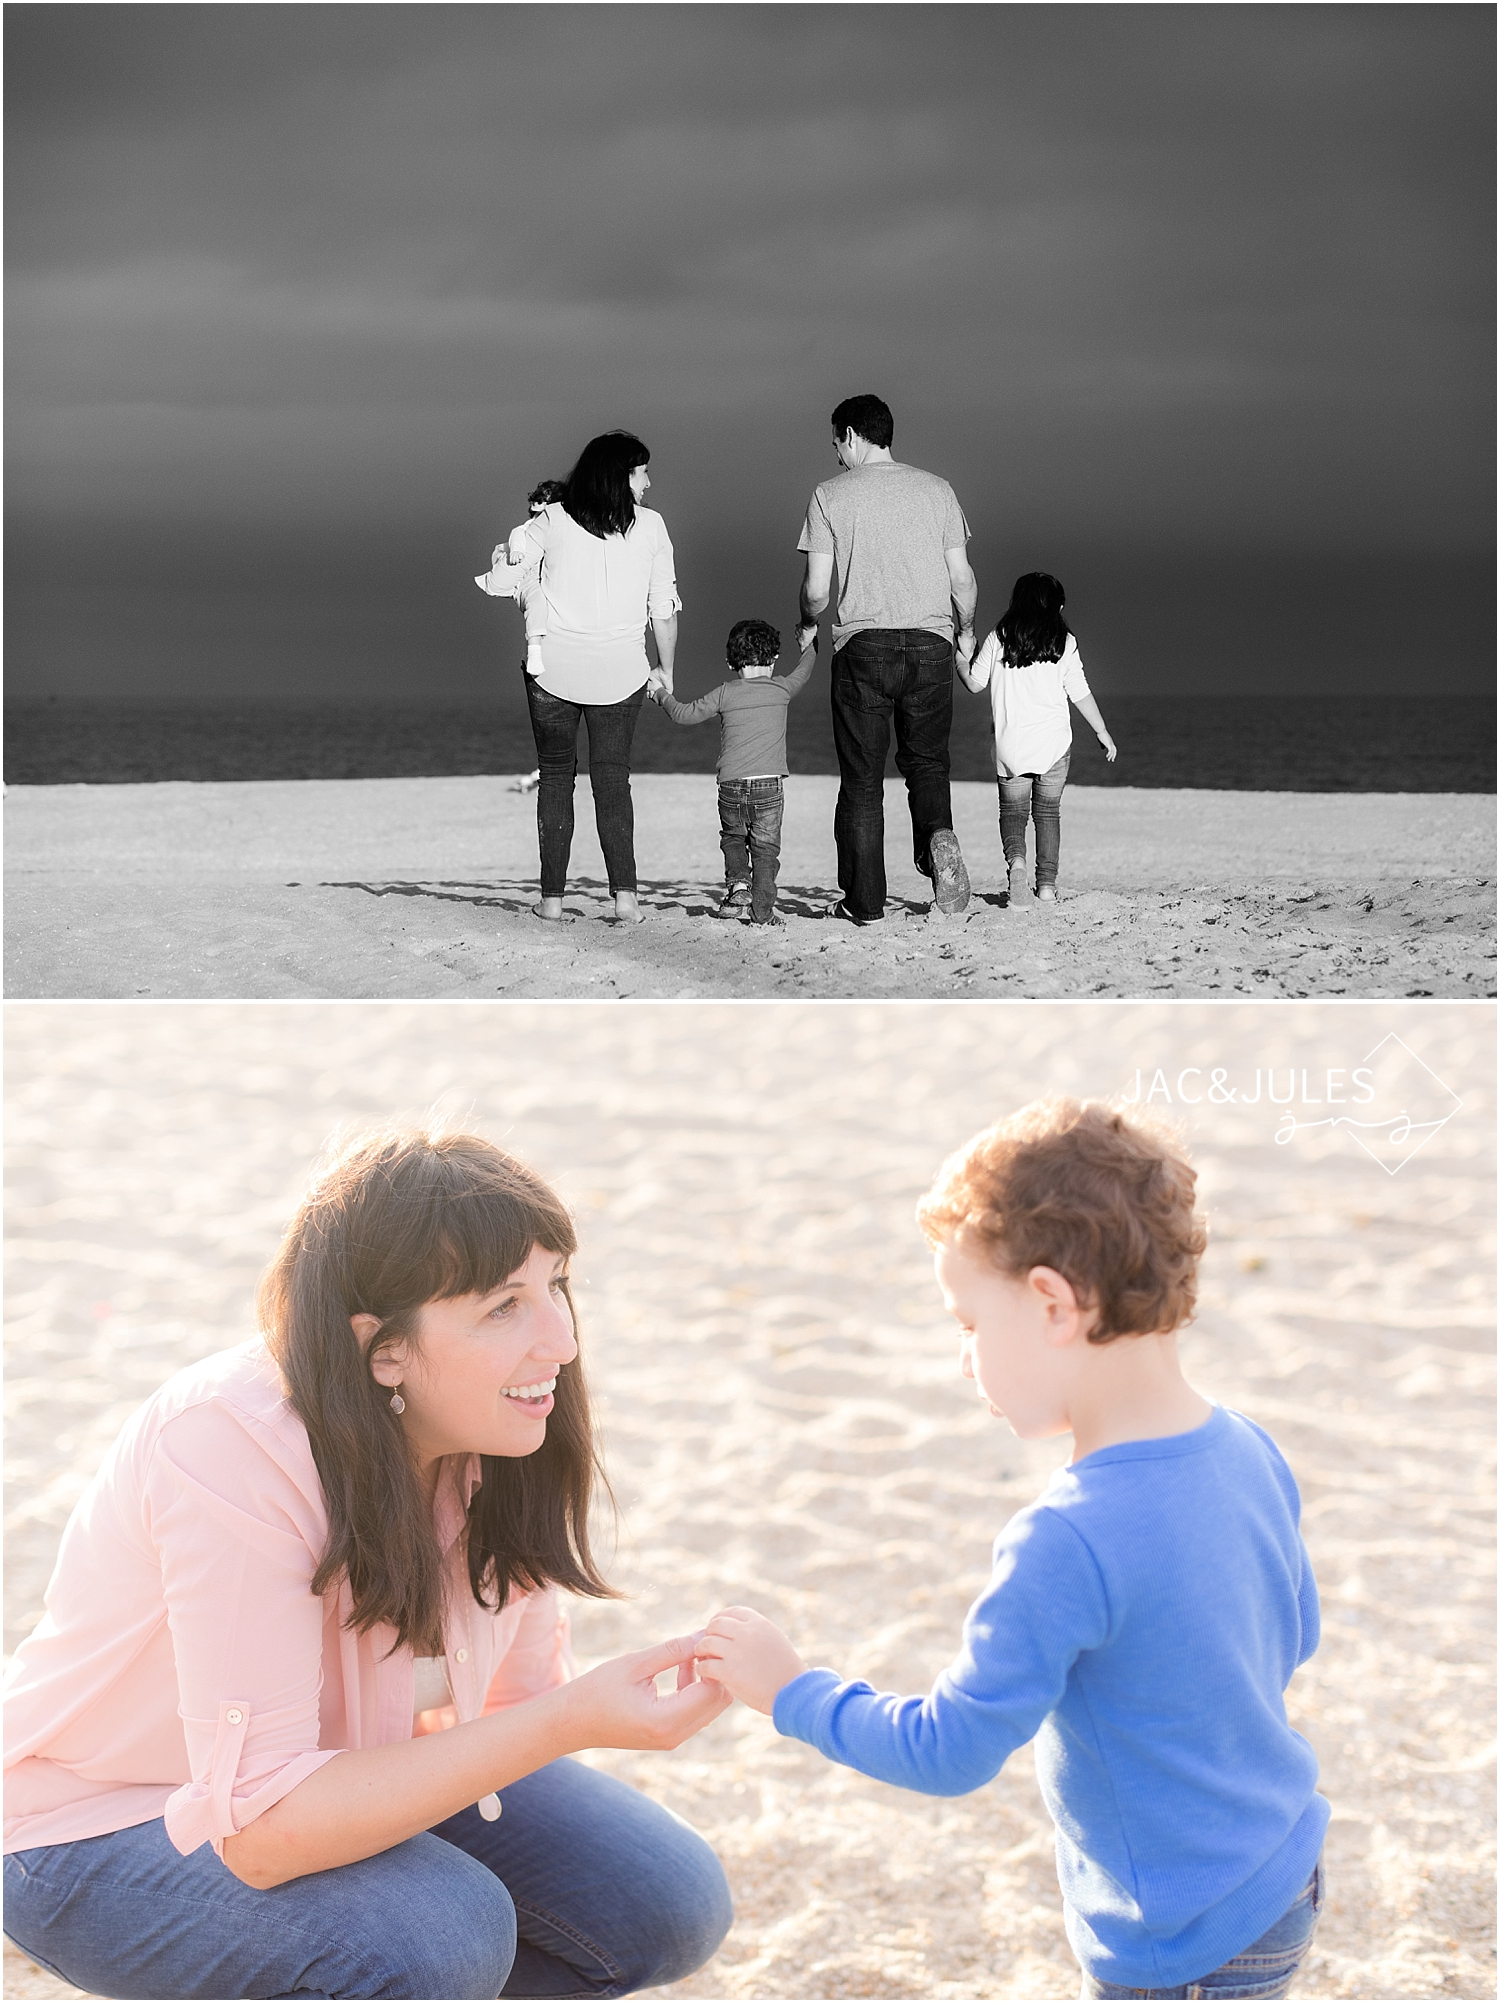 jacnjules photograph a family on the beach in point pleasant nj